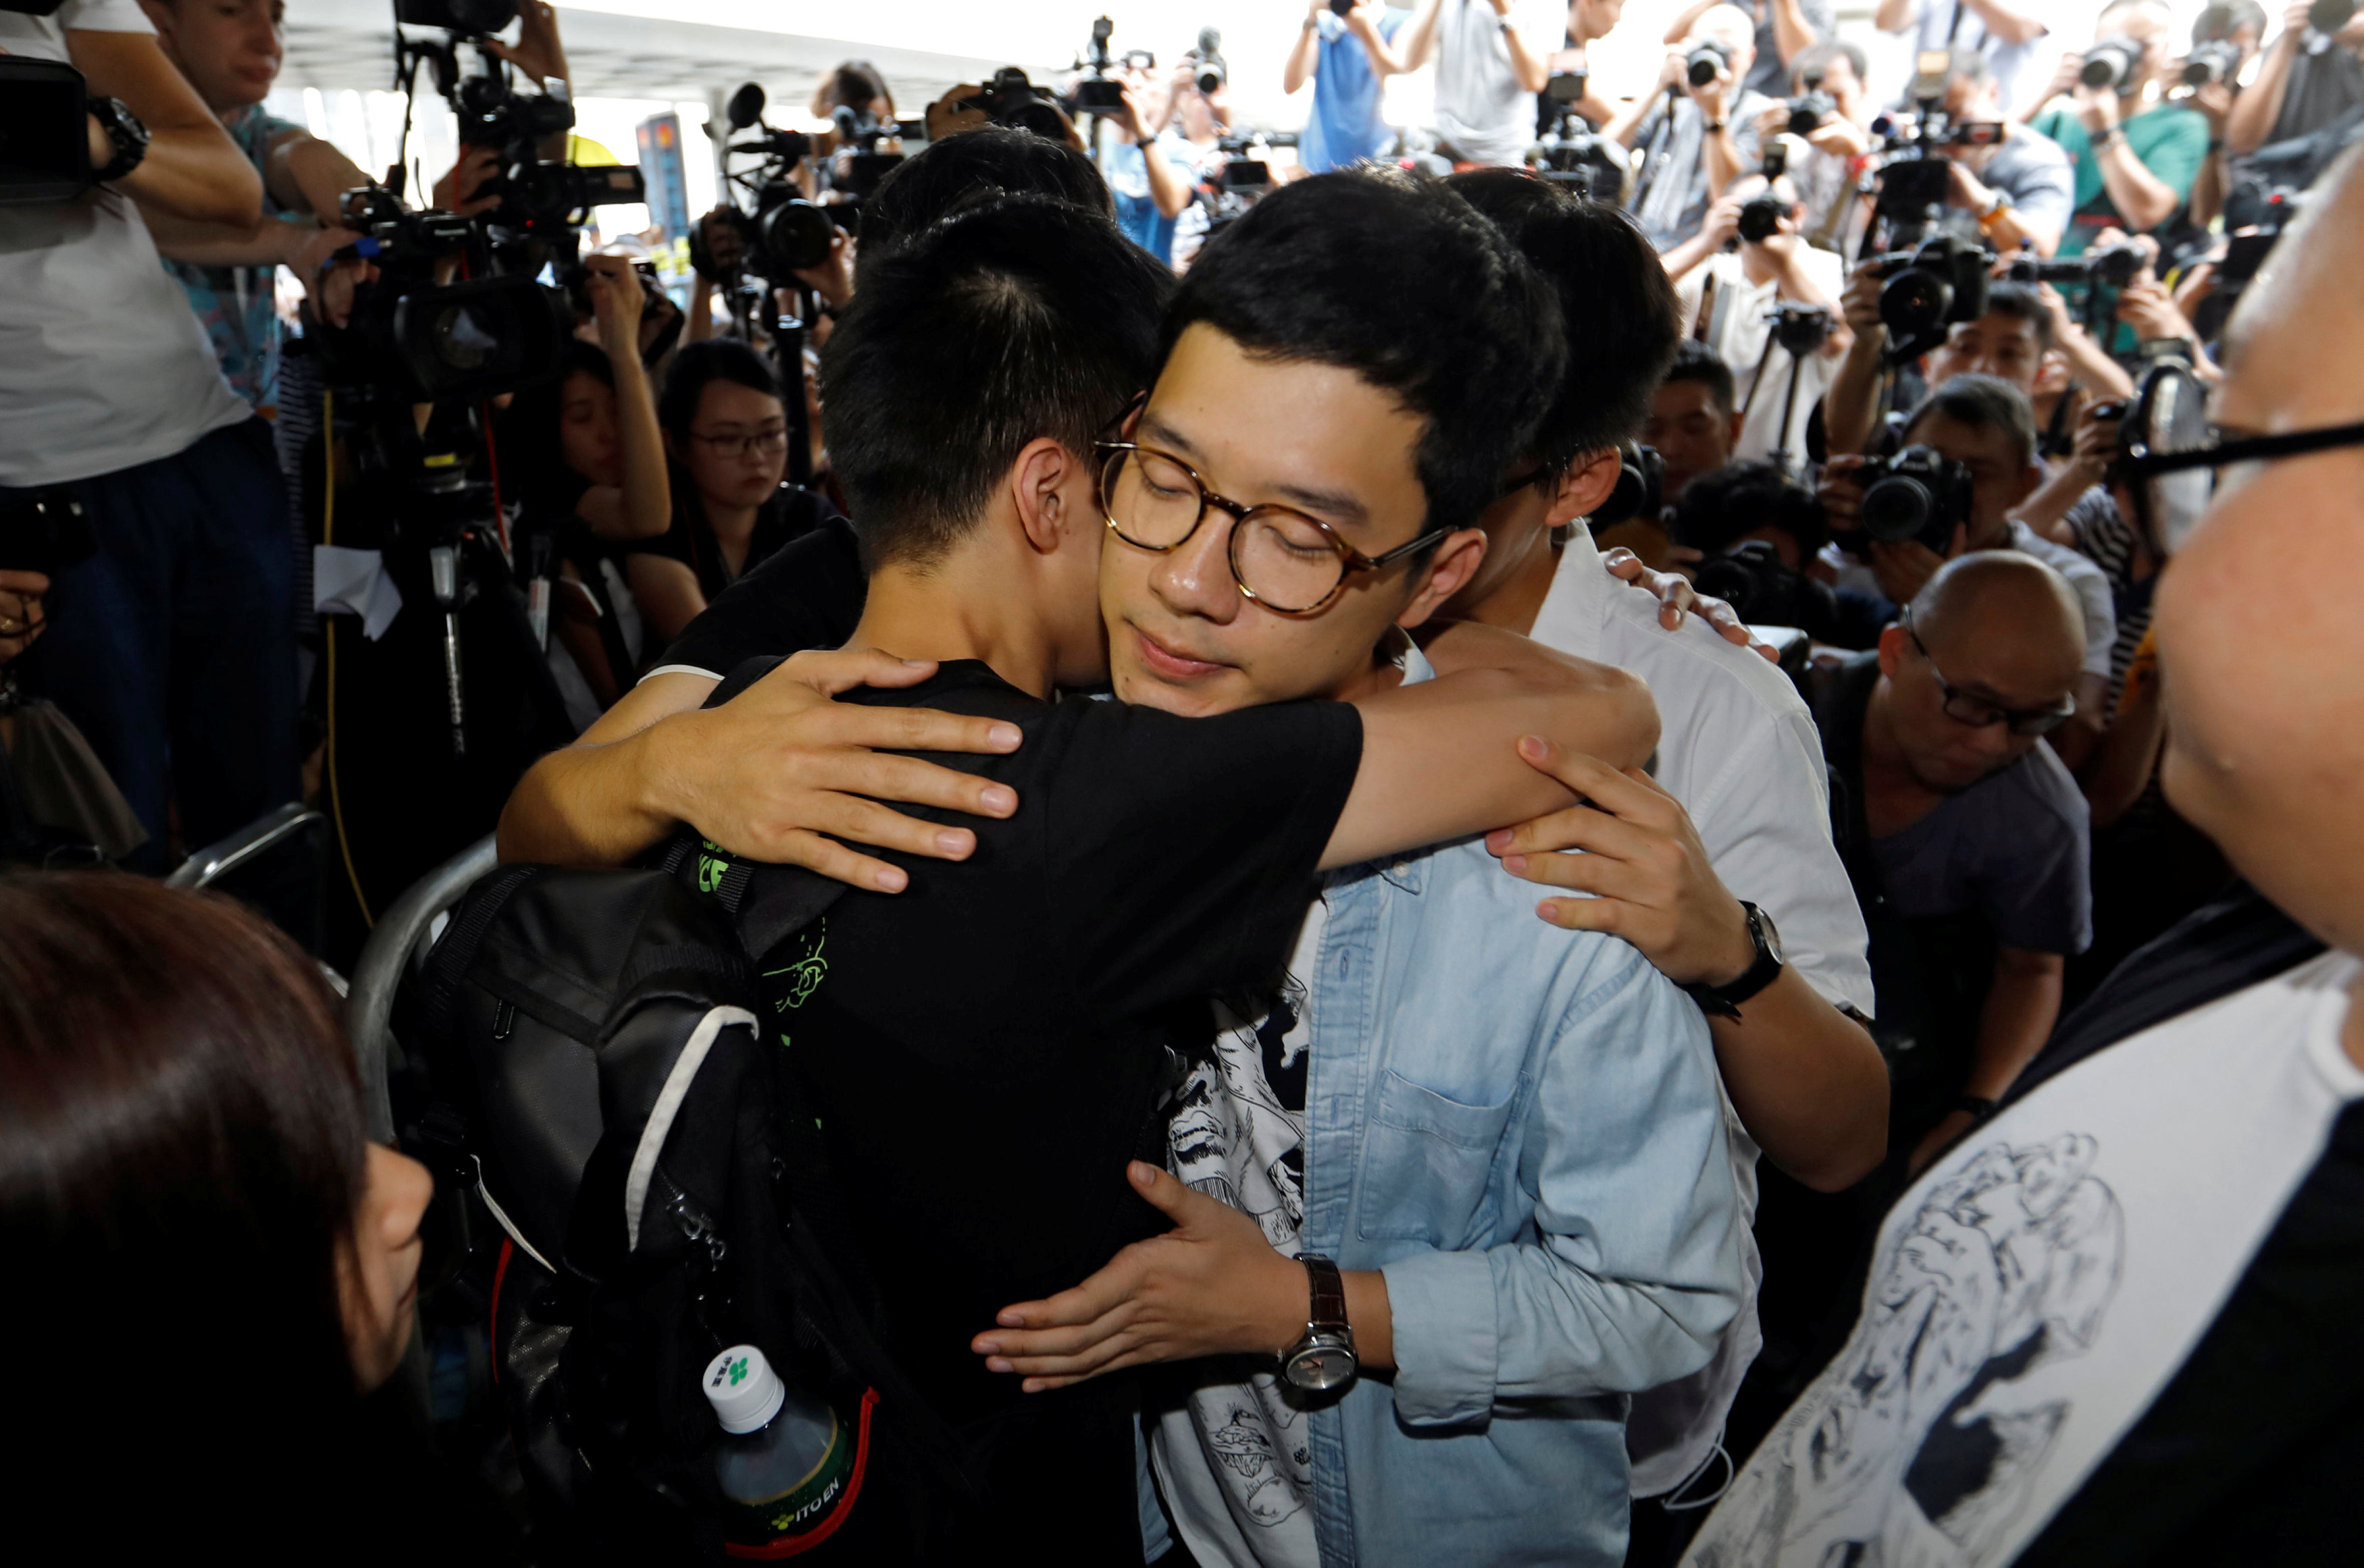 Student leaders Nathan Law and Joshua Wong hug Lester Shum as they arrive at the High Court to face verdict on charges relating to the 2014 pro-democracy Umbrella Movement, also known as Occupy Central protests, in Hong Kong, China on August 17, 2017. (REUTERS/Tyrone Siu)